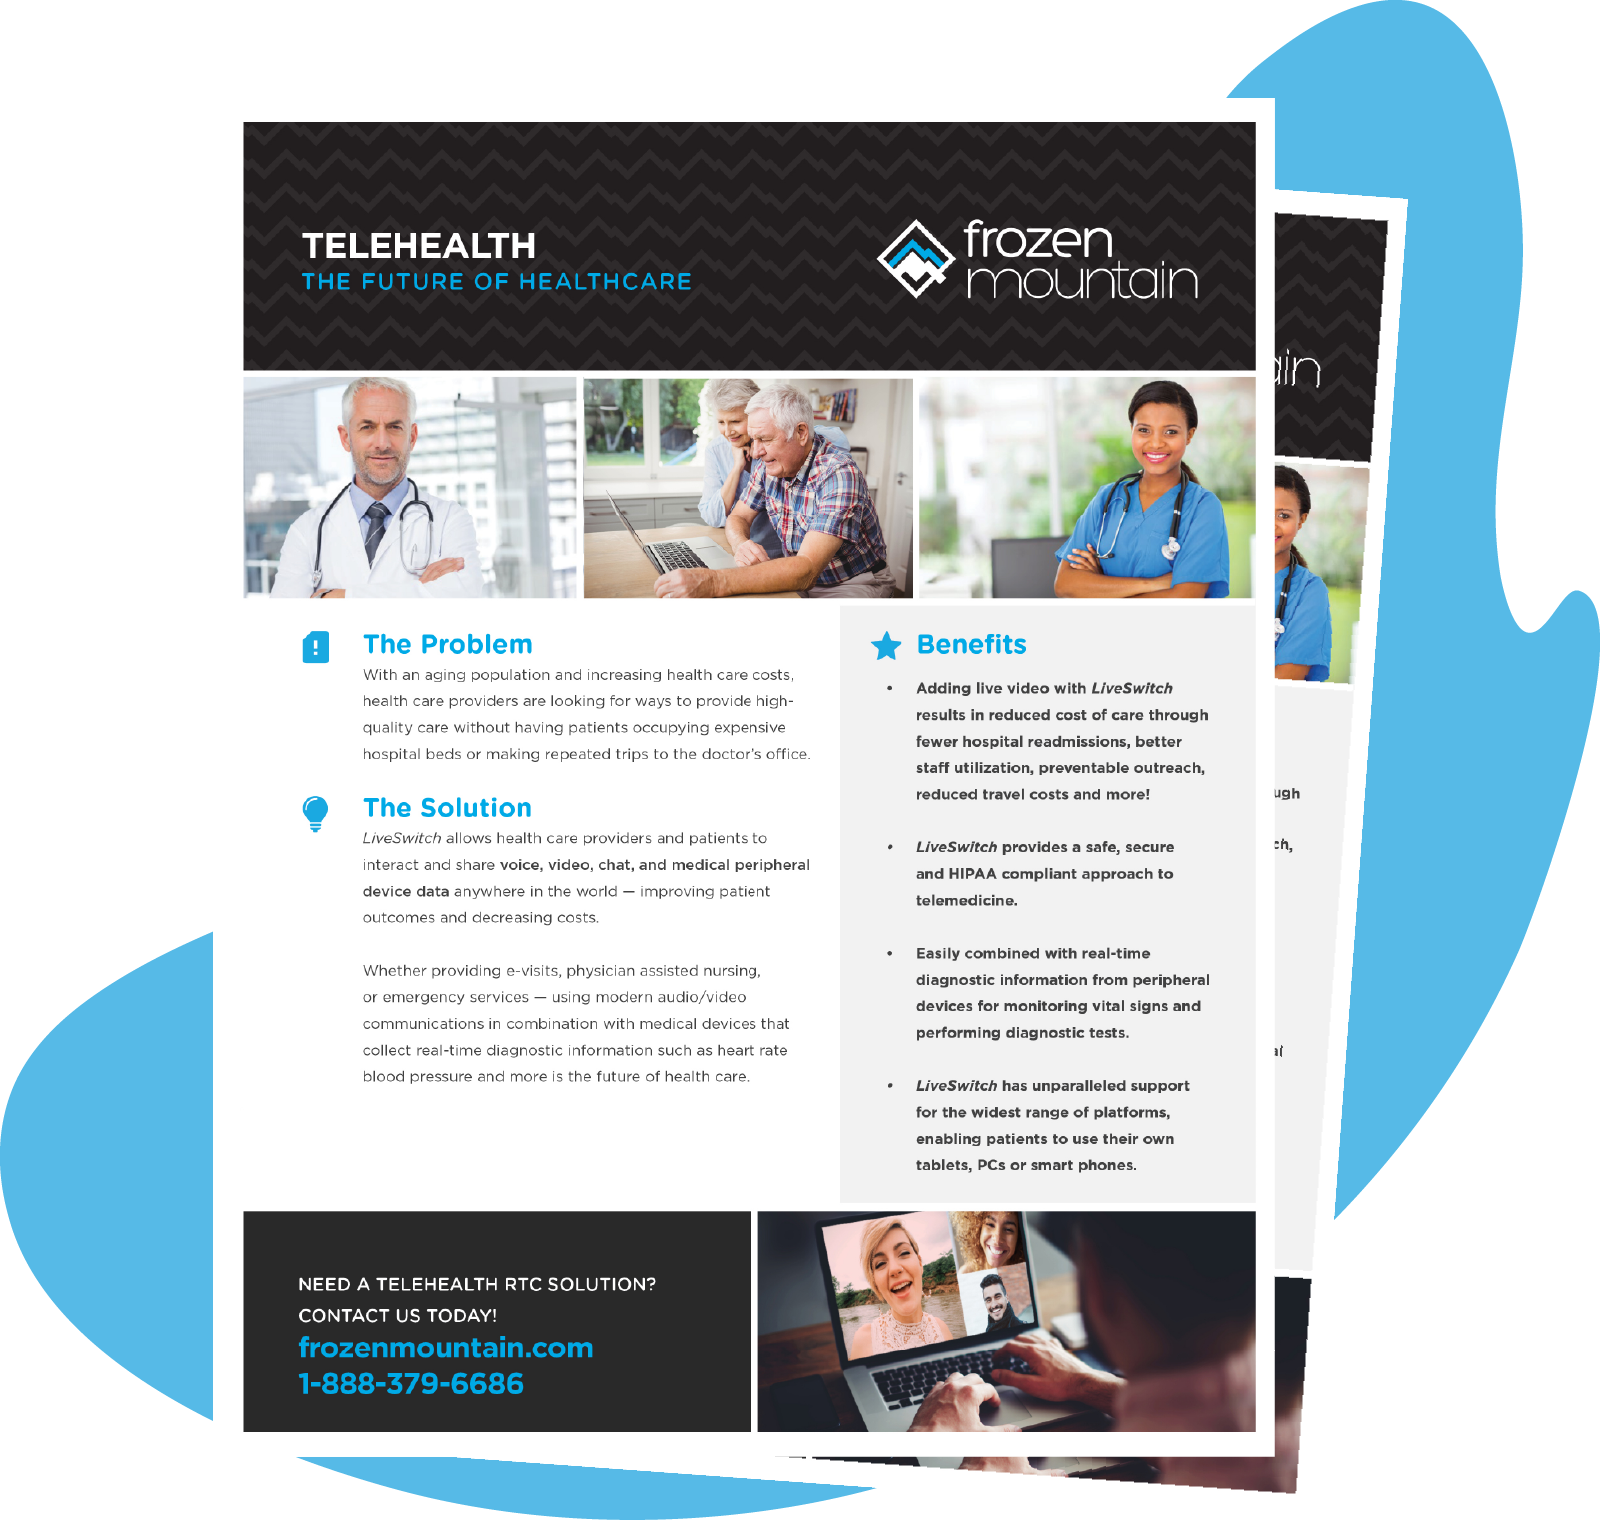 Content Offer - Flexible Video Streaming for Telehealth